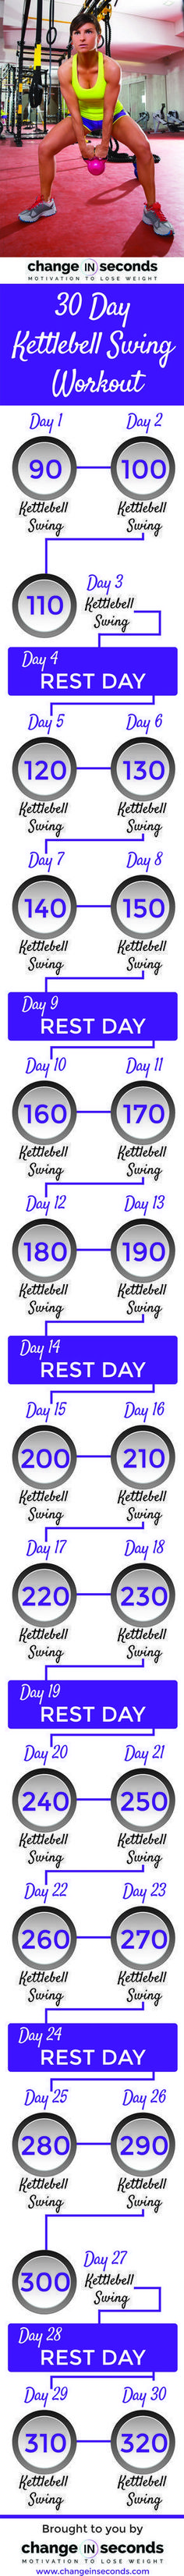 30 day kettlebell challenge | Posted By: NewHowToLoseBellyFat.com